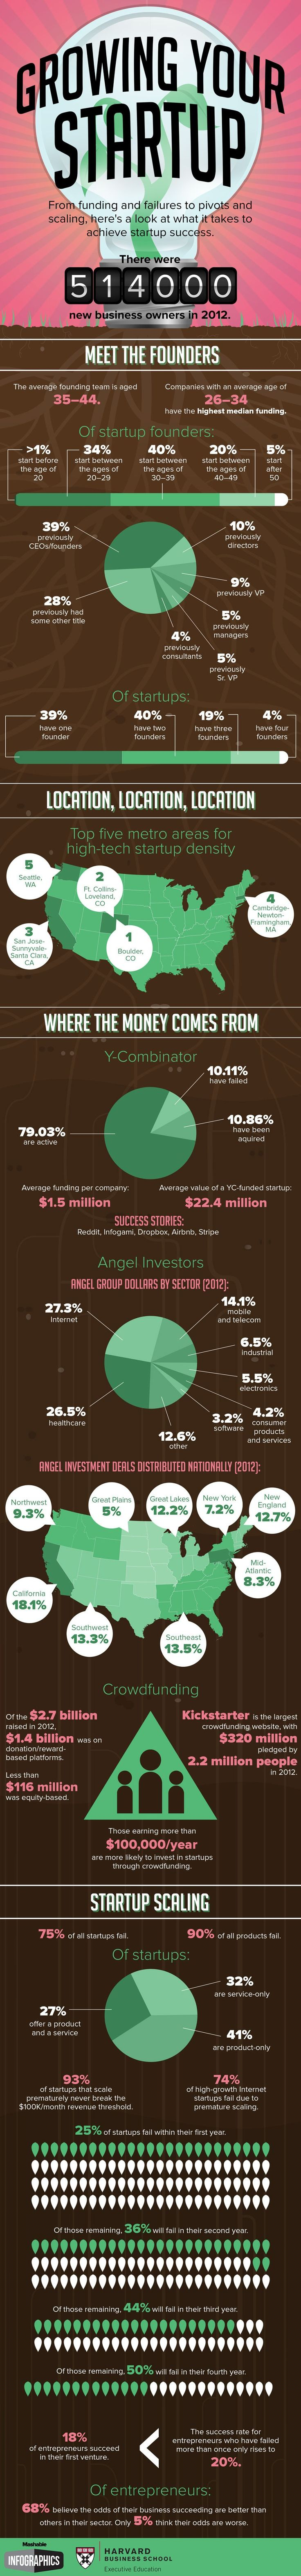 An infographic examining some of the factors that contribute to startup success. #startups #influence #branding